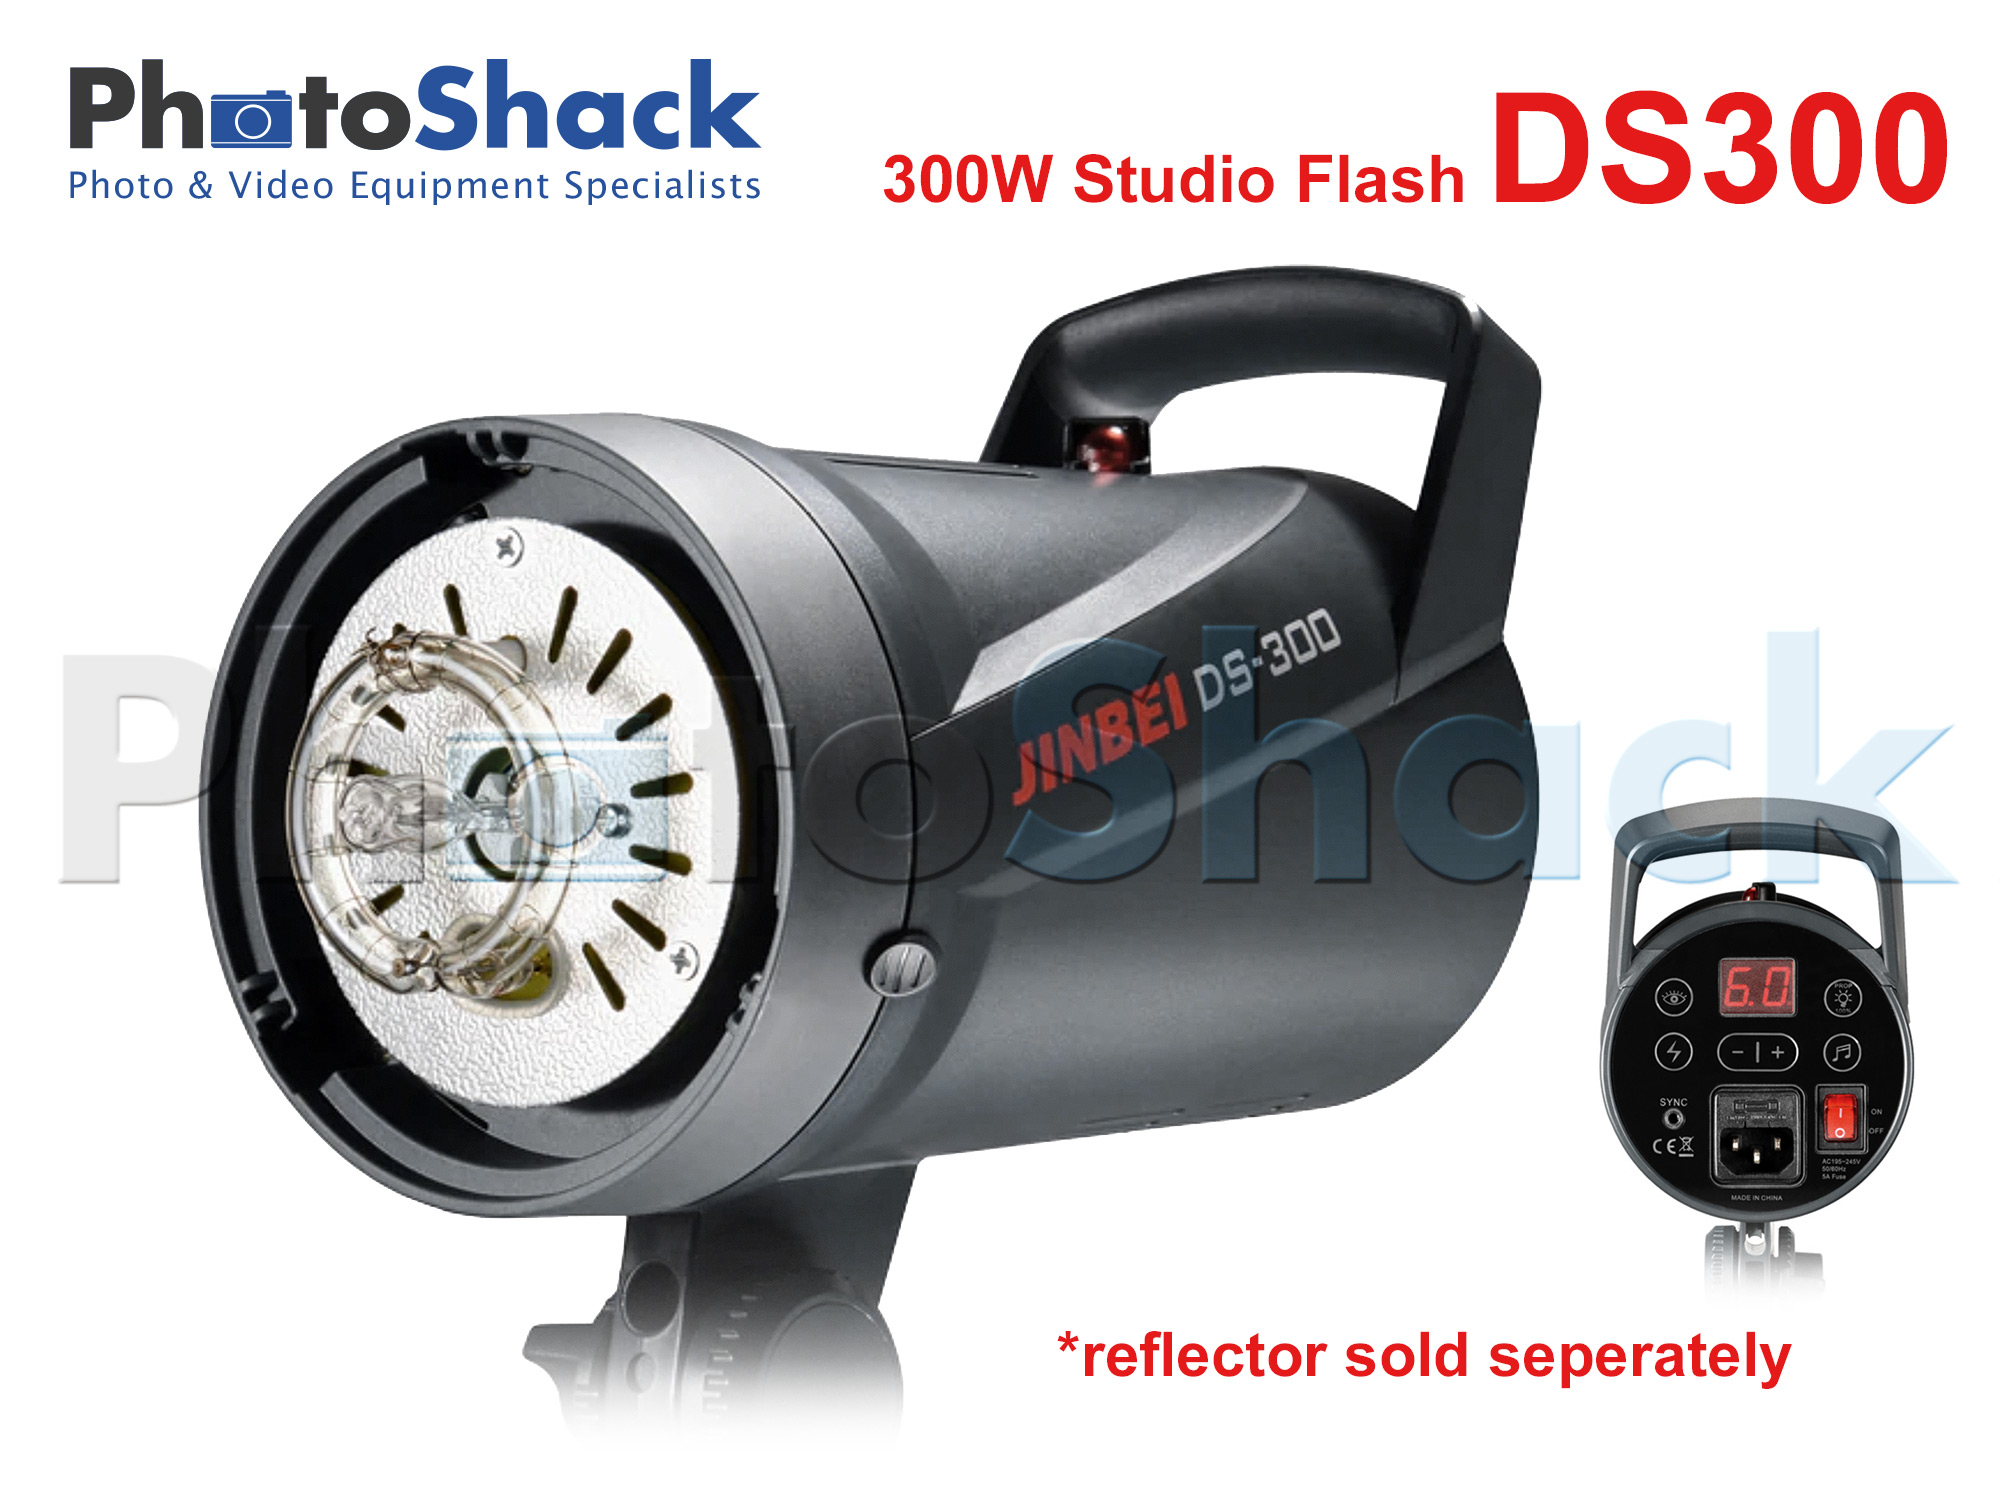 Studio Flash - 300W - Jinbei DS300